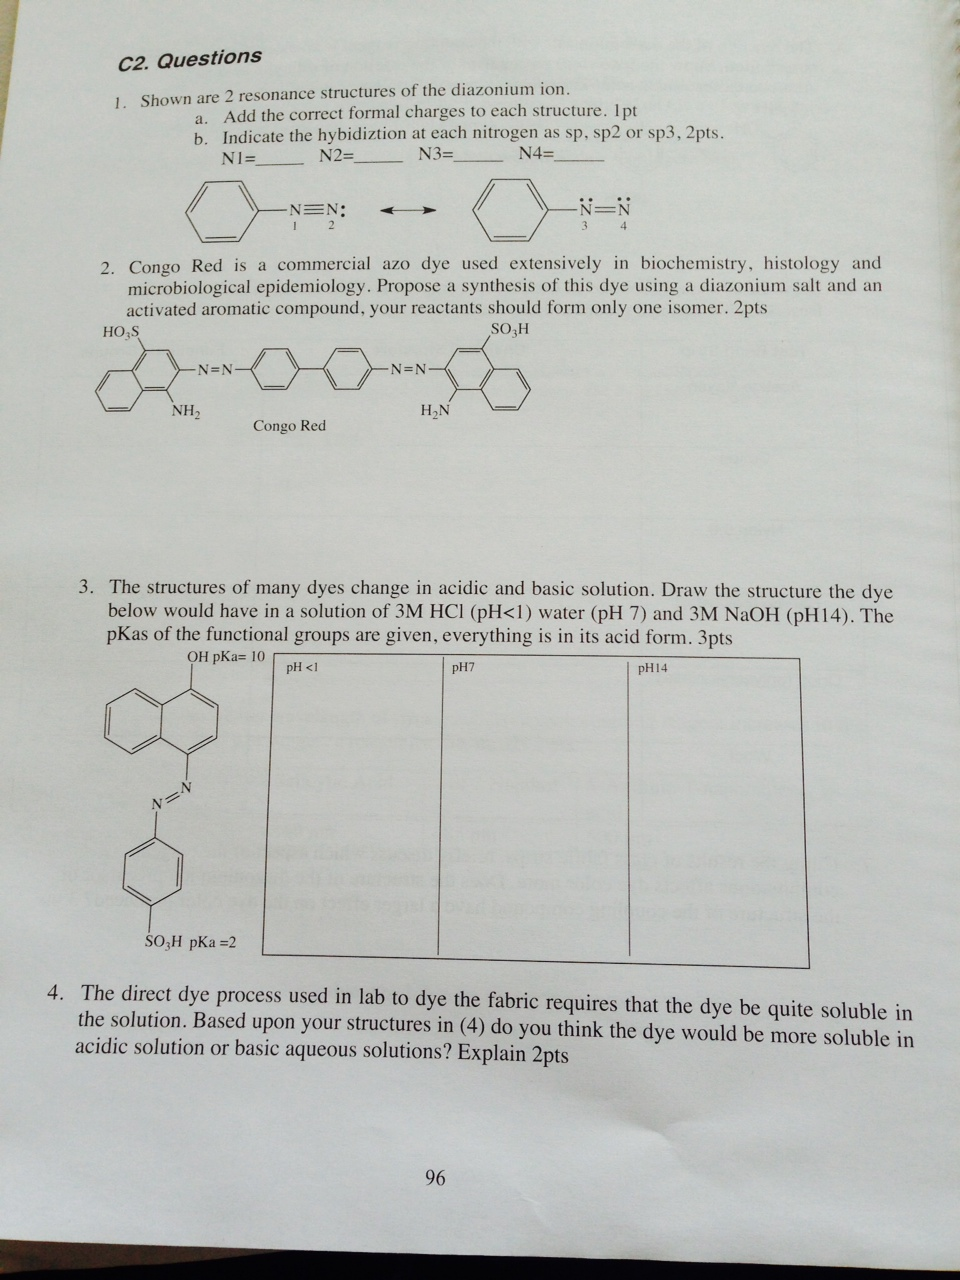 Lewis Structure For C2h4cl2 Solved: C2. Que...